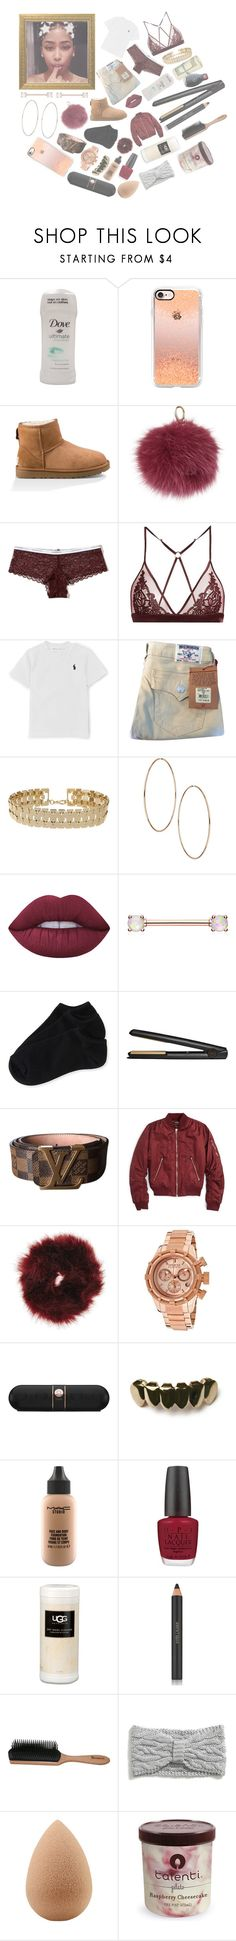 """ you α bαd αss bltch , you poppin "" by loyalty-x0 ❤ liked on Polyvore featuring Casetify, UGG, Harrods, Hollister Co., Fleur of England, True Religion, Miss Selfridge, Lime Crime, Aéropostale and GHD"